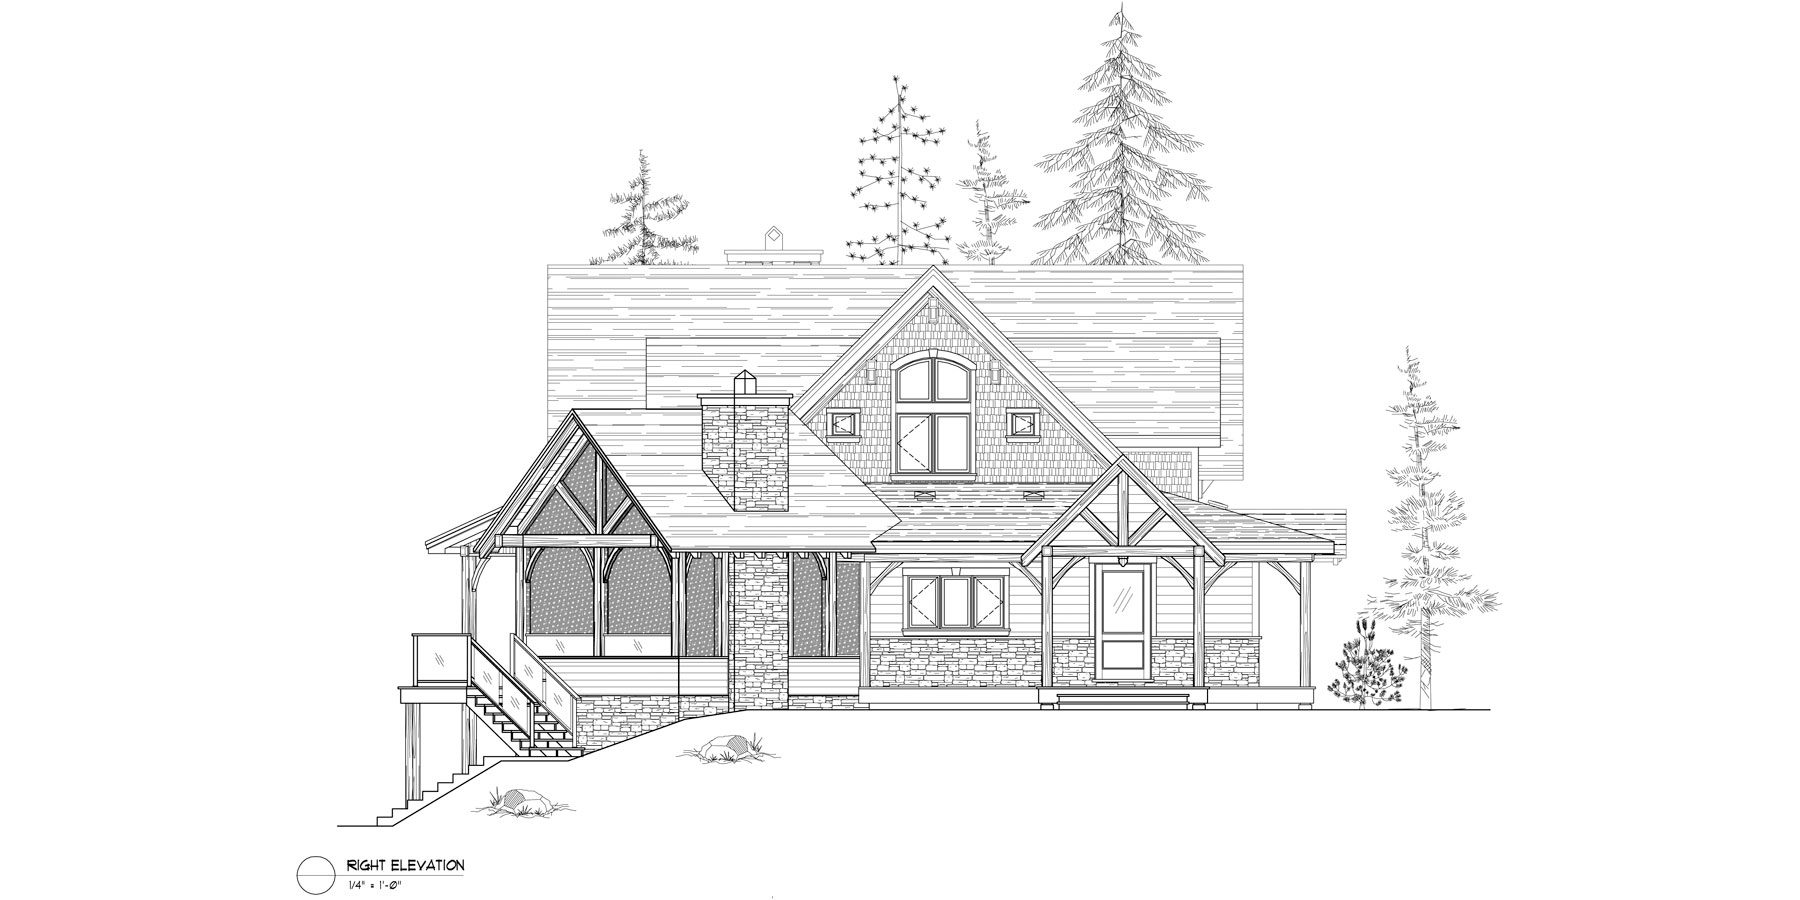 Normerica Timber Frame, House Plan, The Kearns 3510, Right Elevation